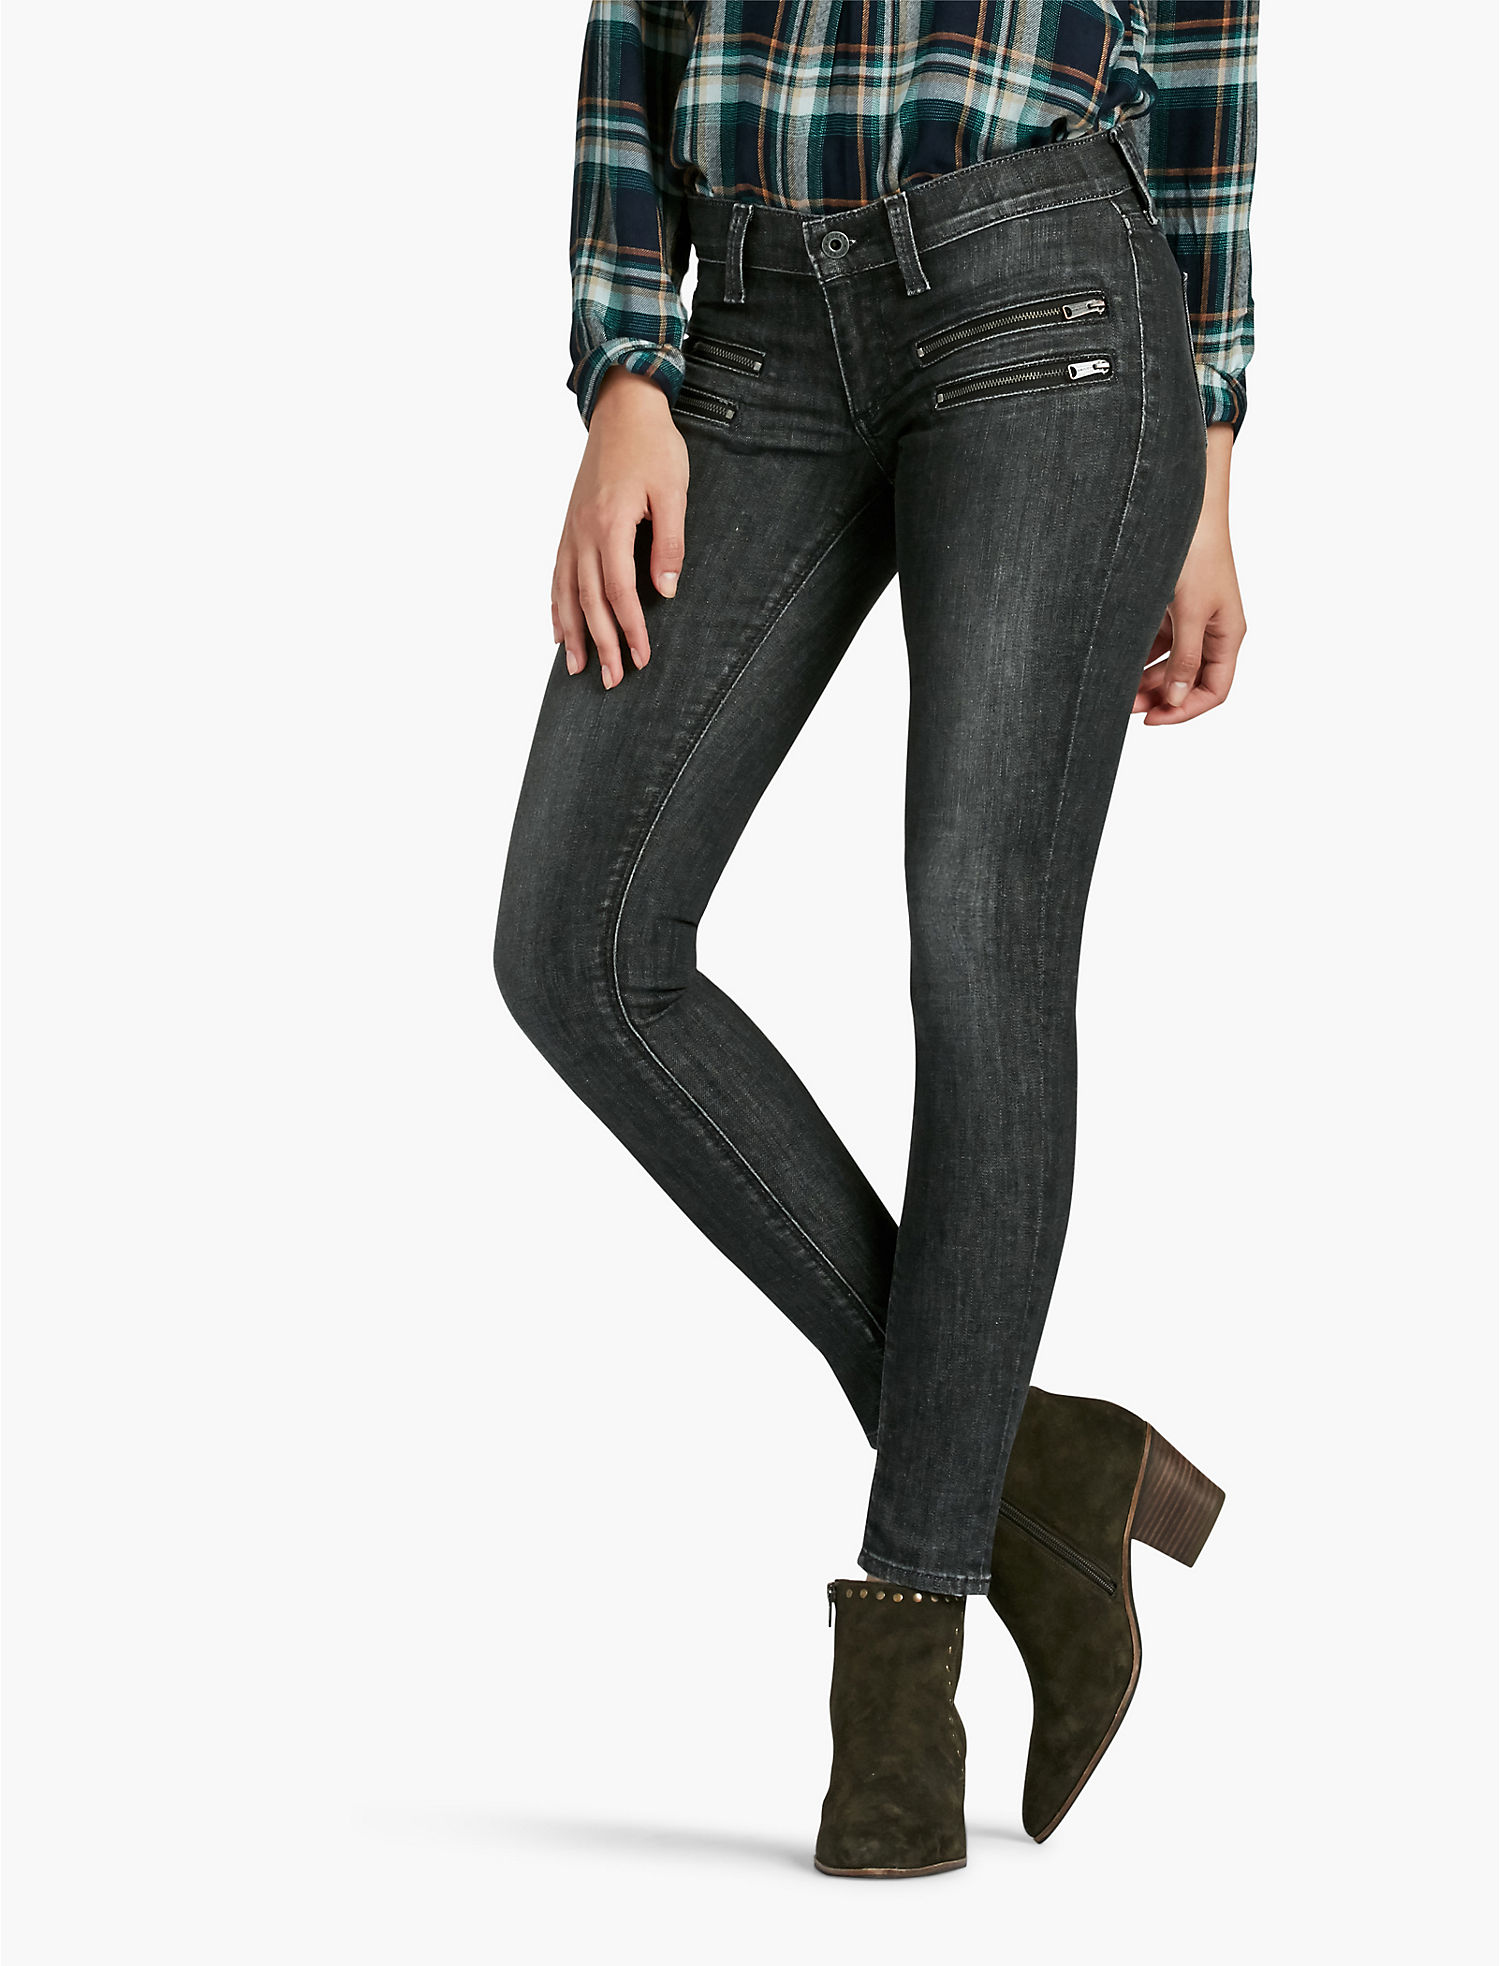 Discount designer jeans for womens bbg clothing Designer clothes discounted